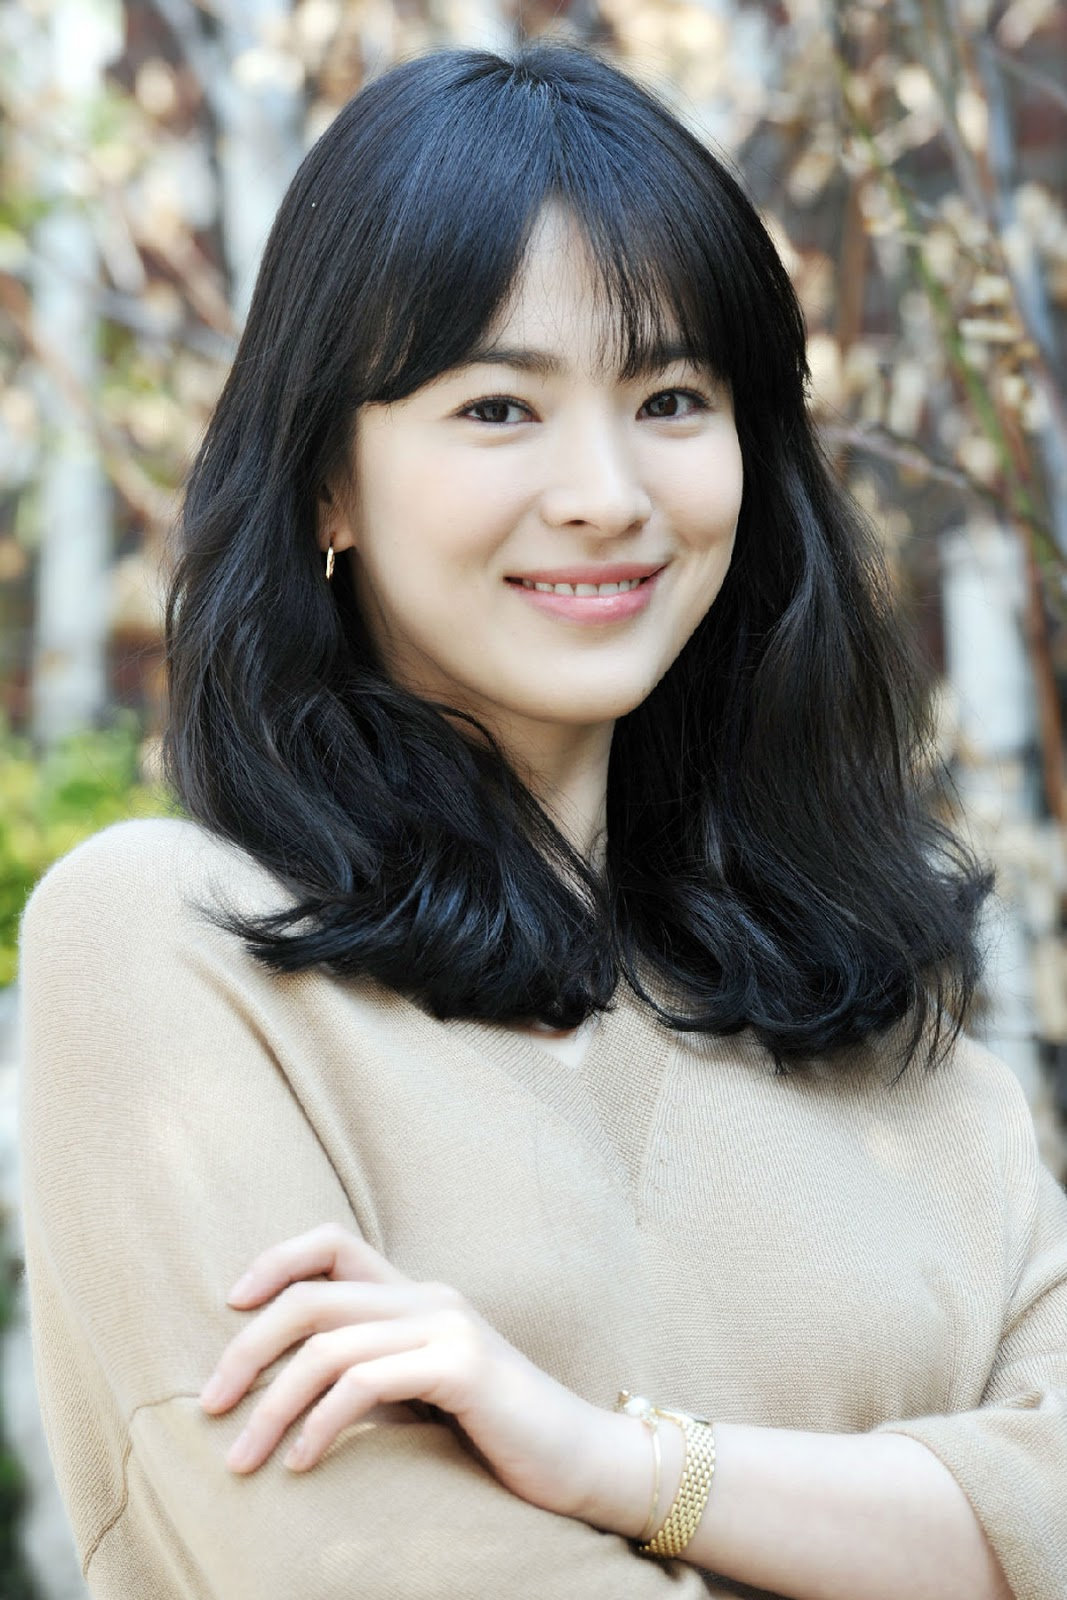 Song Hye Kyo HD Wallpapers | HD Wallpapers (High ...